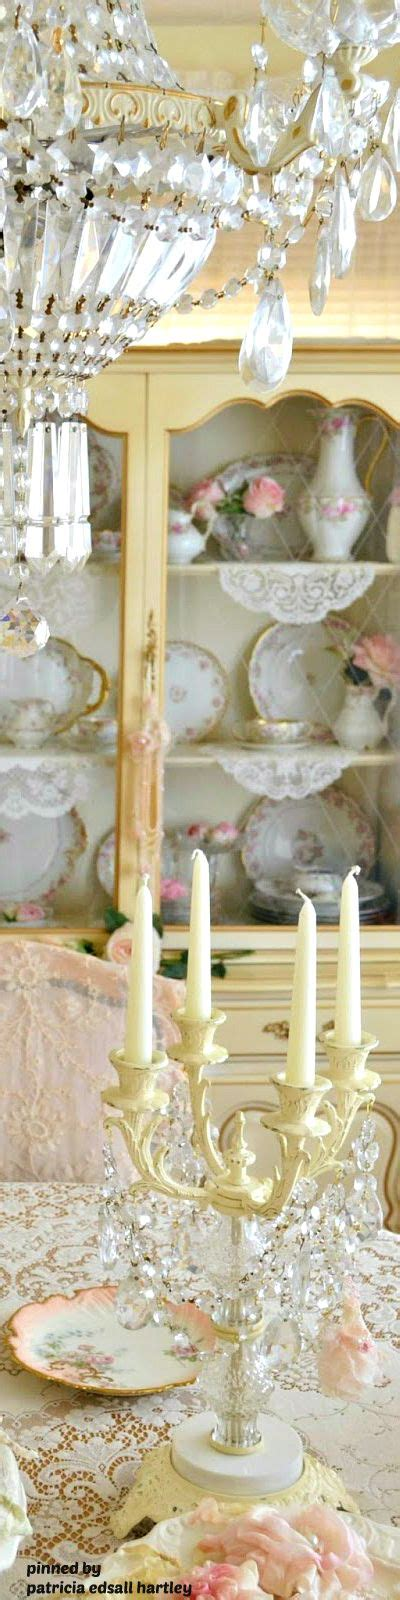 Ym Shaby 17 best images about shabby chic vignettes on d abo shabby chic cottage and